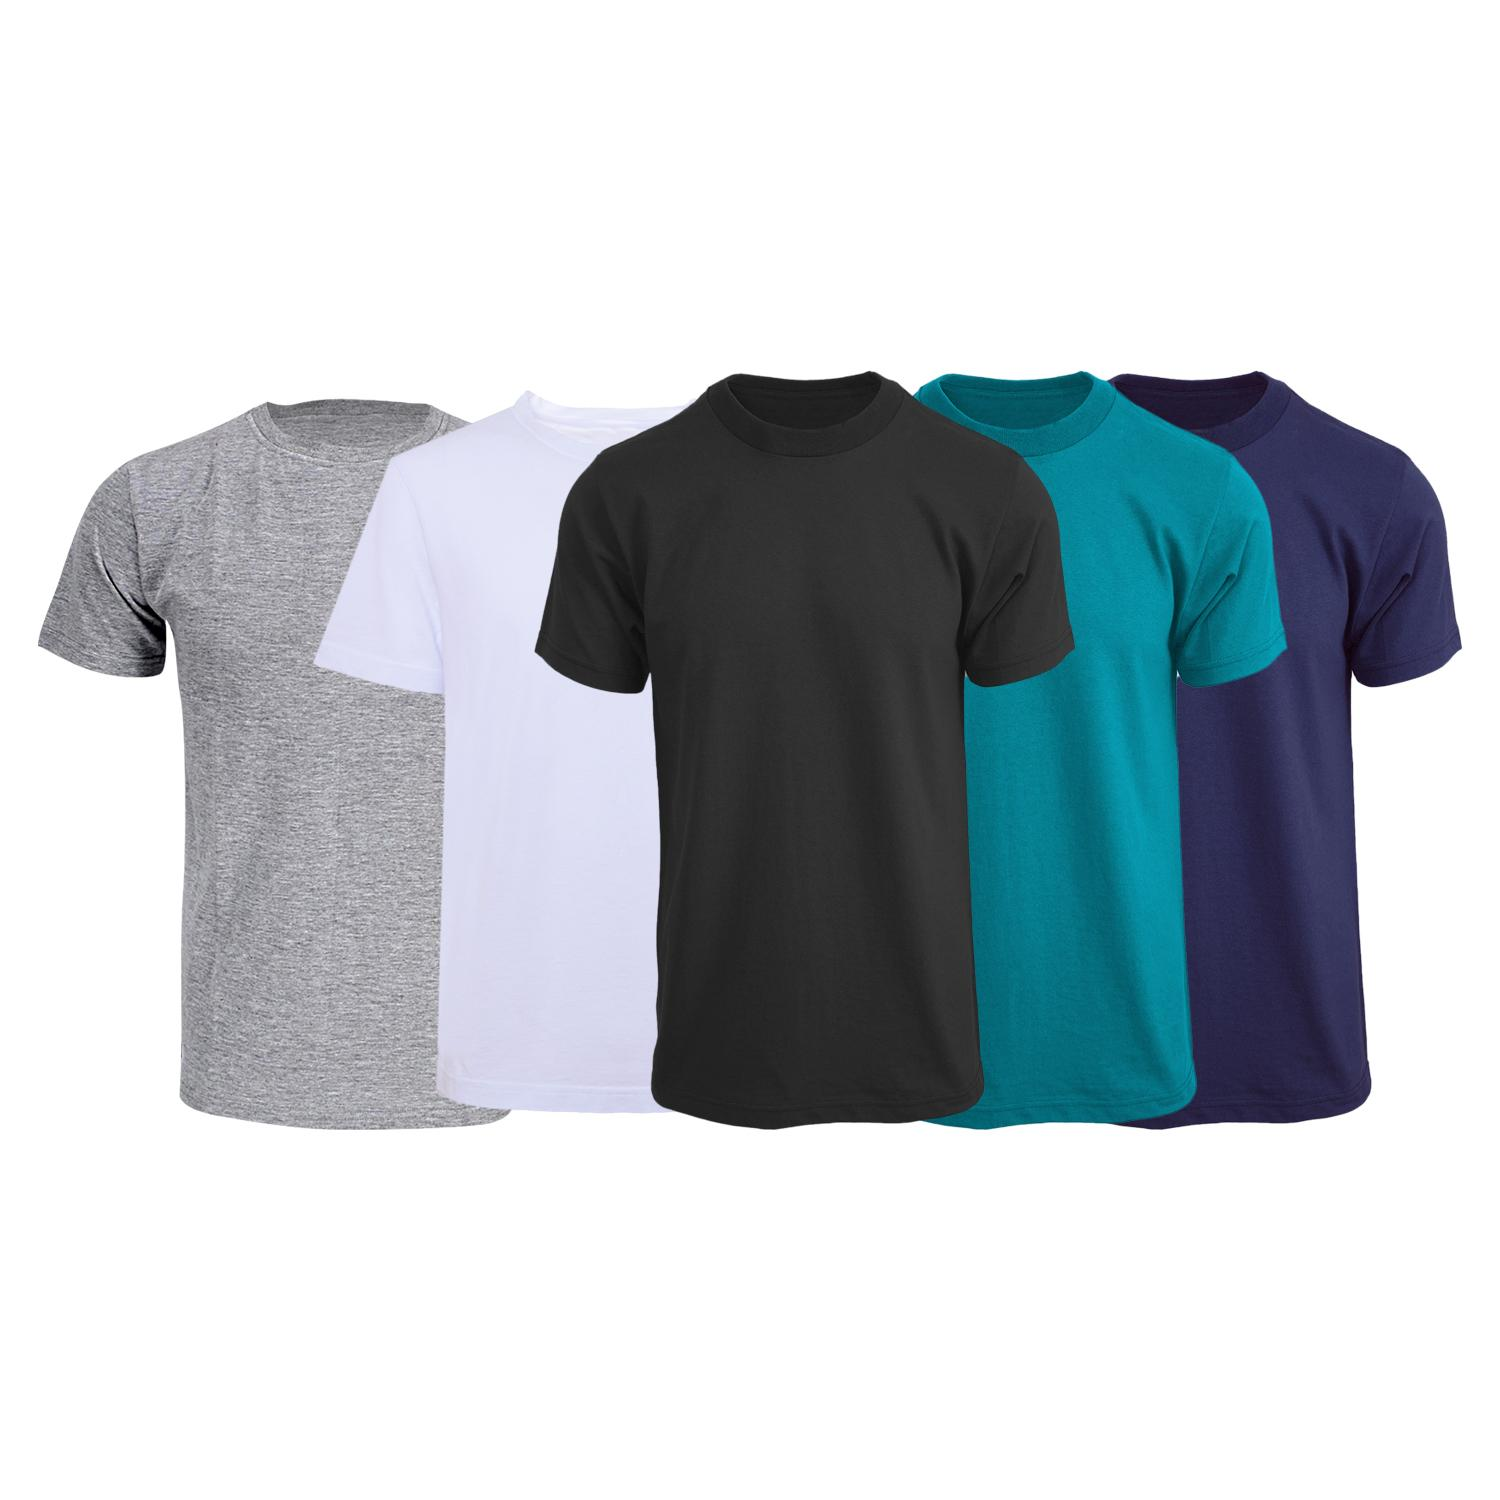 309a538c771 Pack of 5 Solid Round Neck Unisex T-Shirt (Black